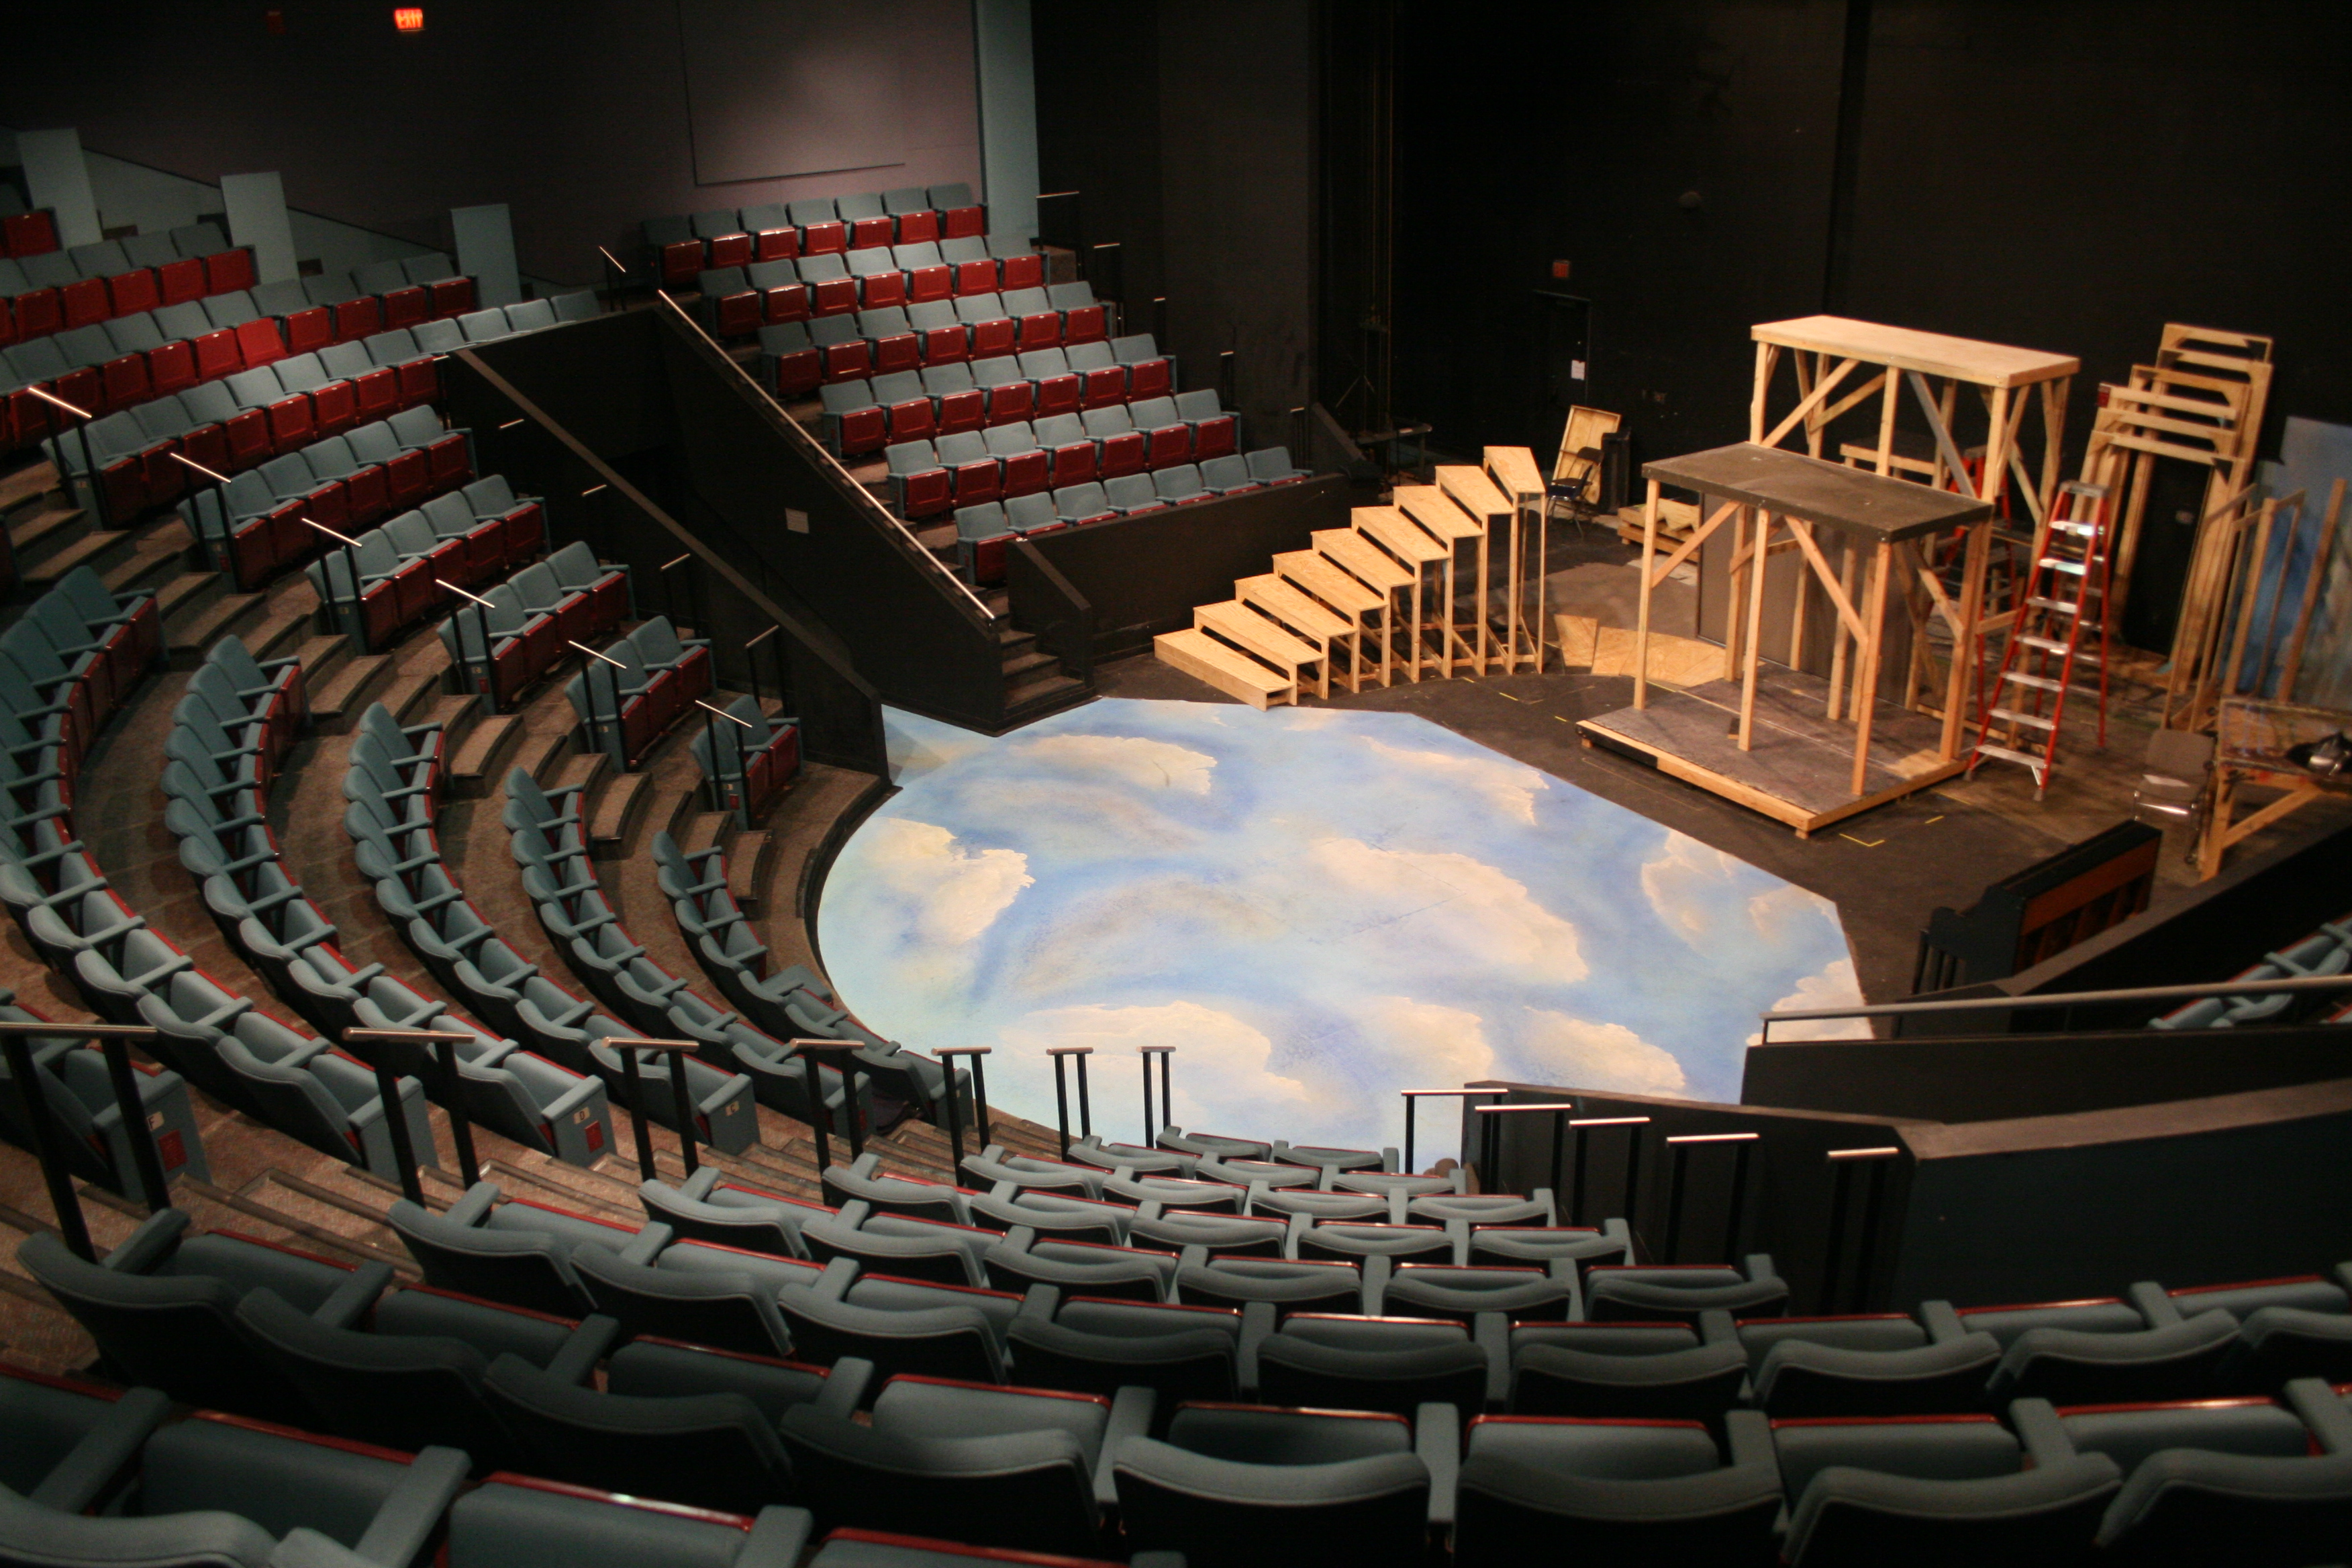 proscenium stage diagram box 2005 ford focus zx3 stereo wiring performing scripted plays theatrical confgurations